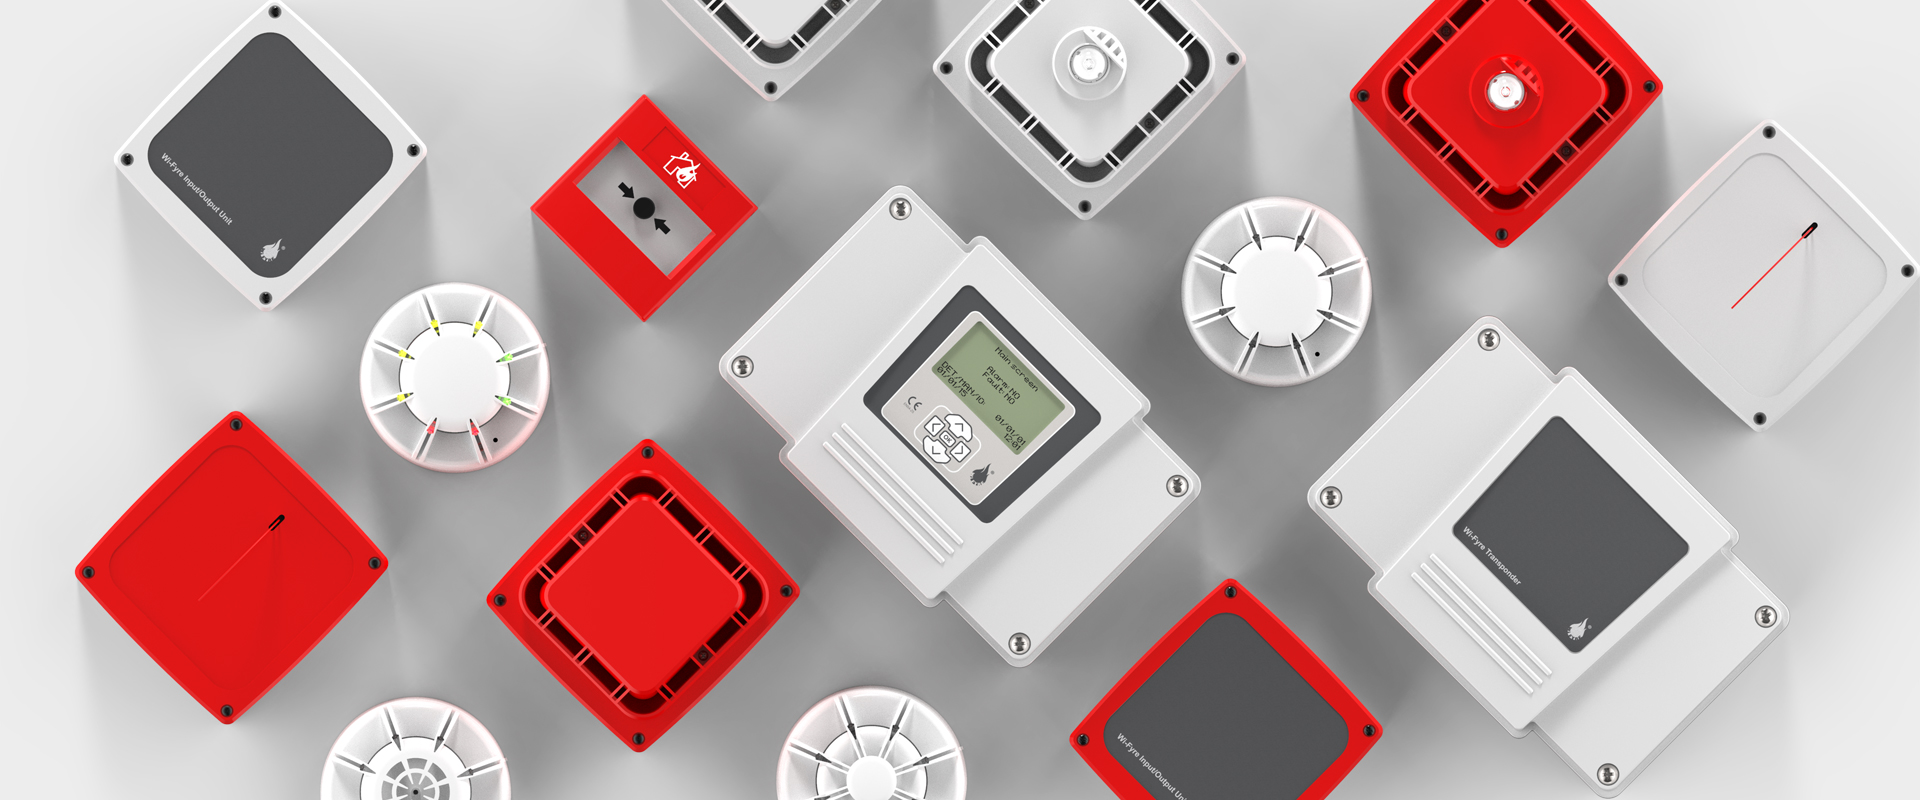 Wireless-Fire-Detection-Page-Featured-Image